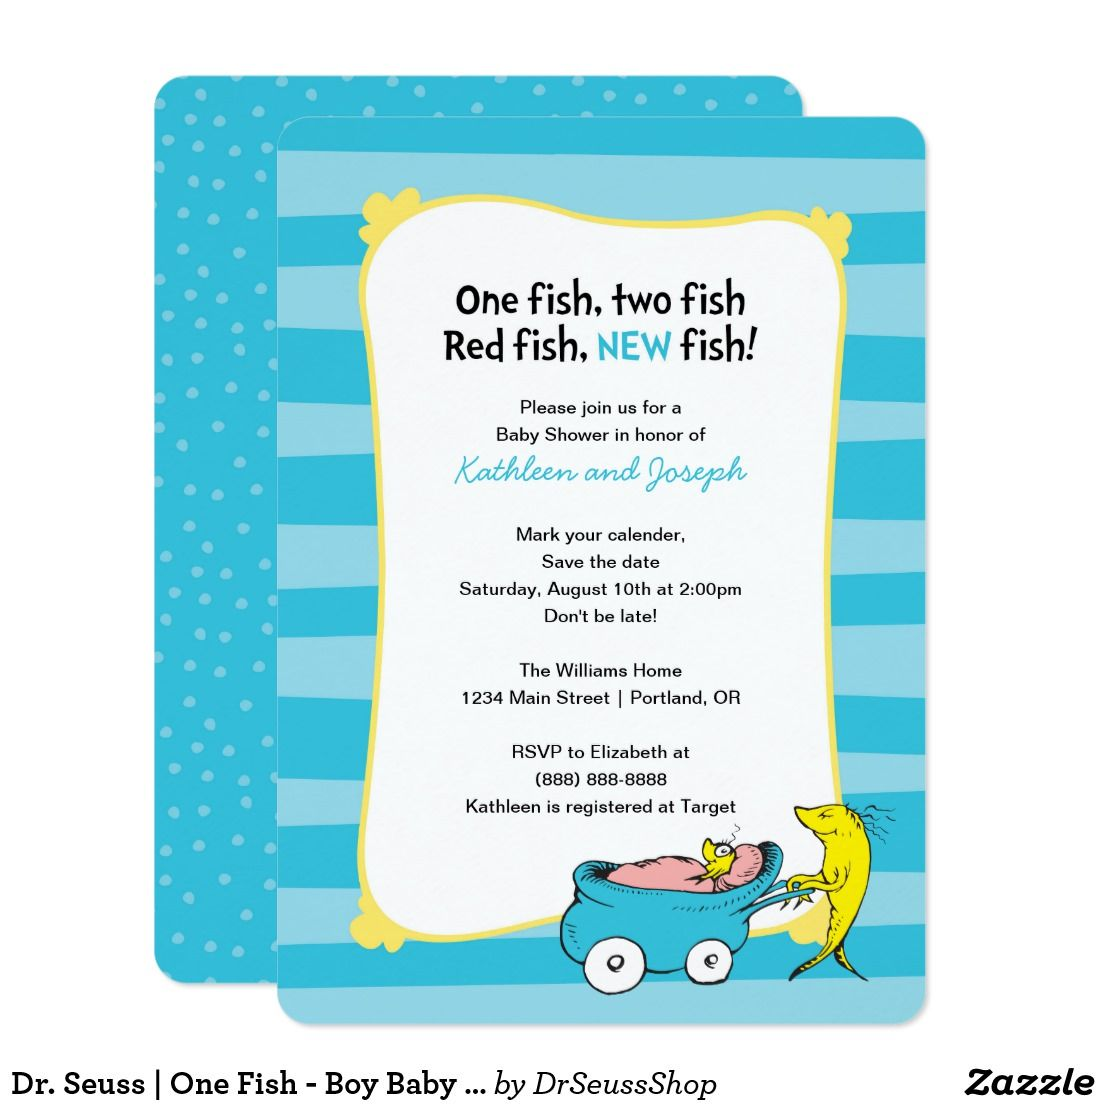 Dr. Seuss | One Fish - Boy Baby Shower Save The Date | Pinterest ...